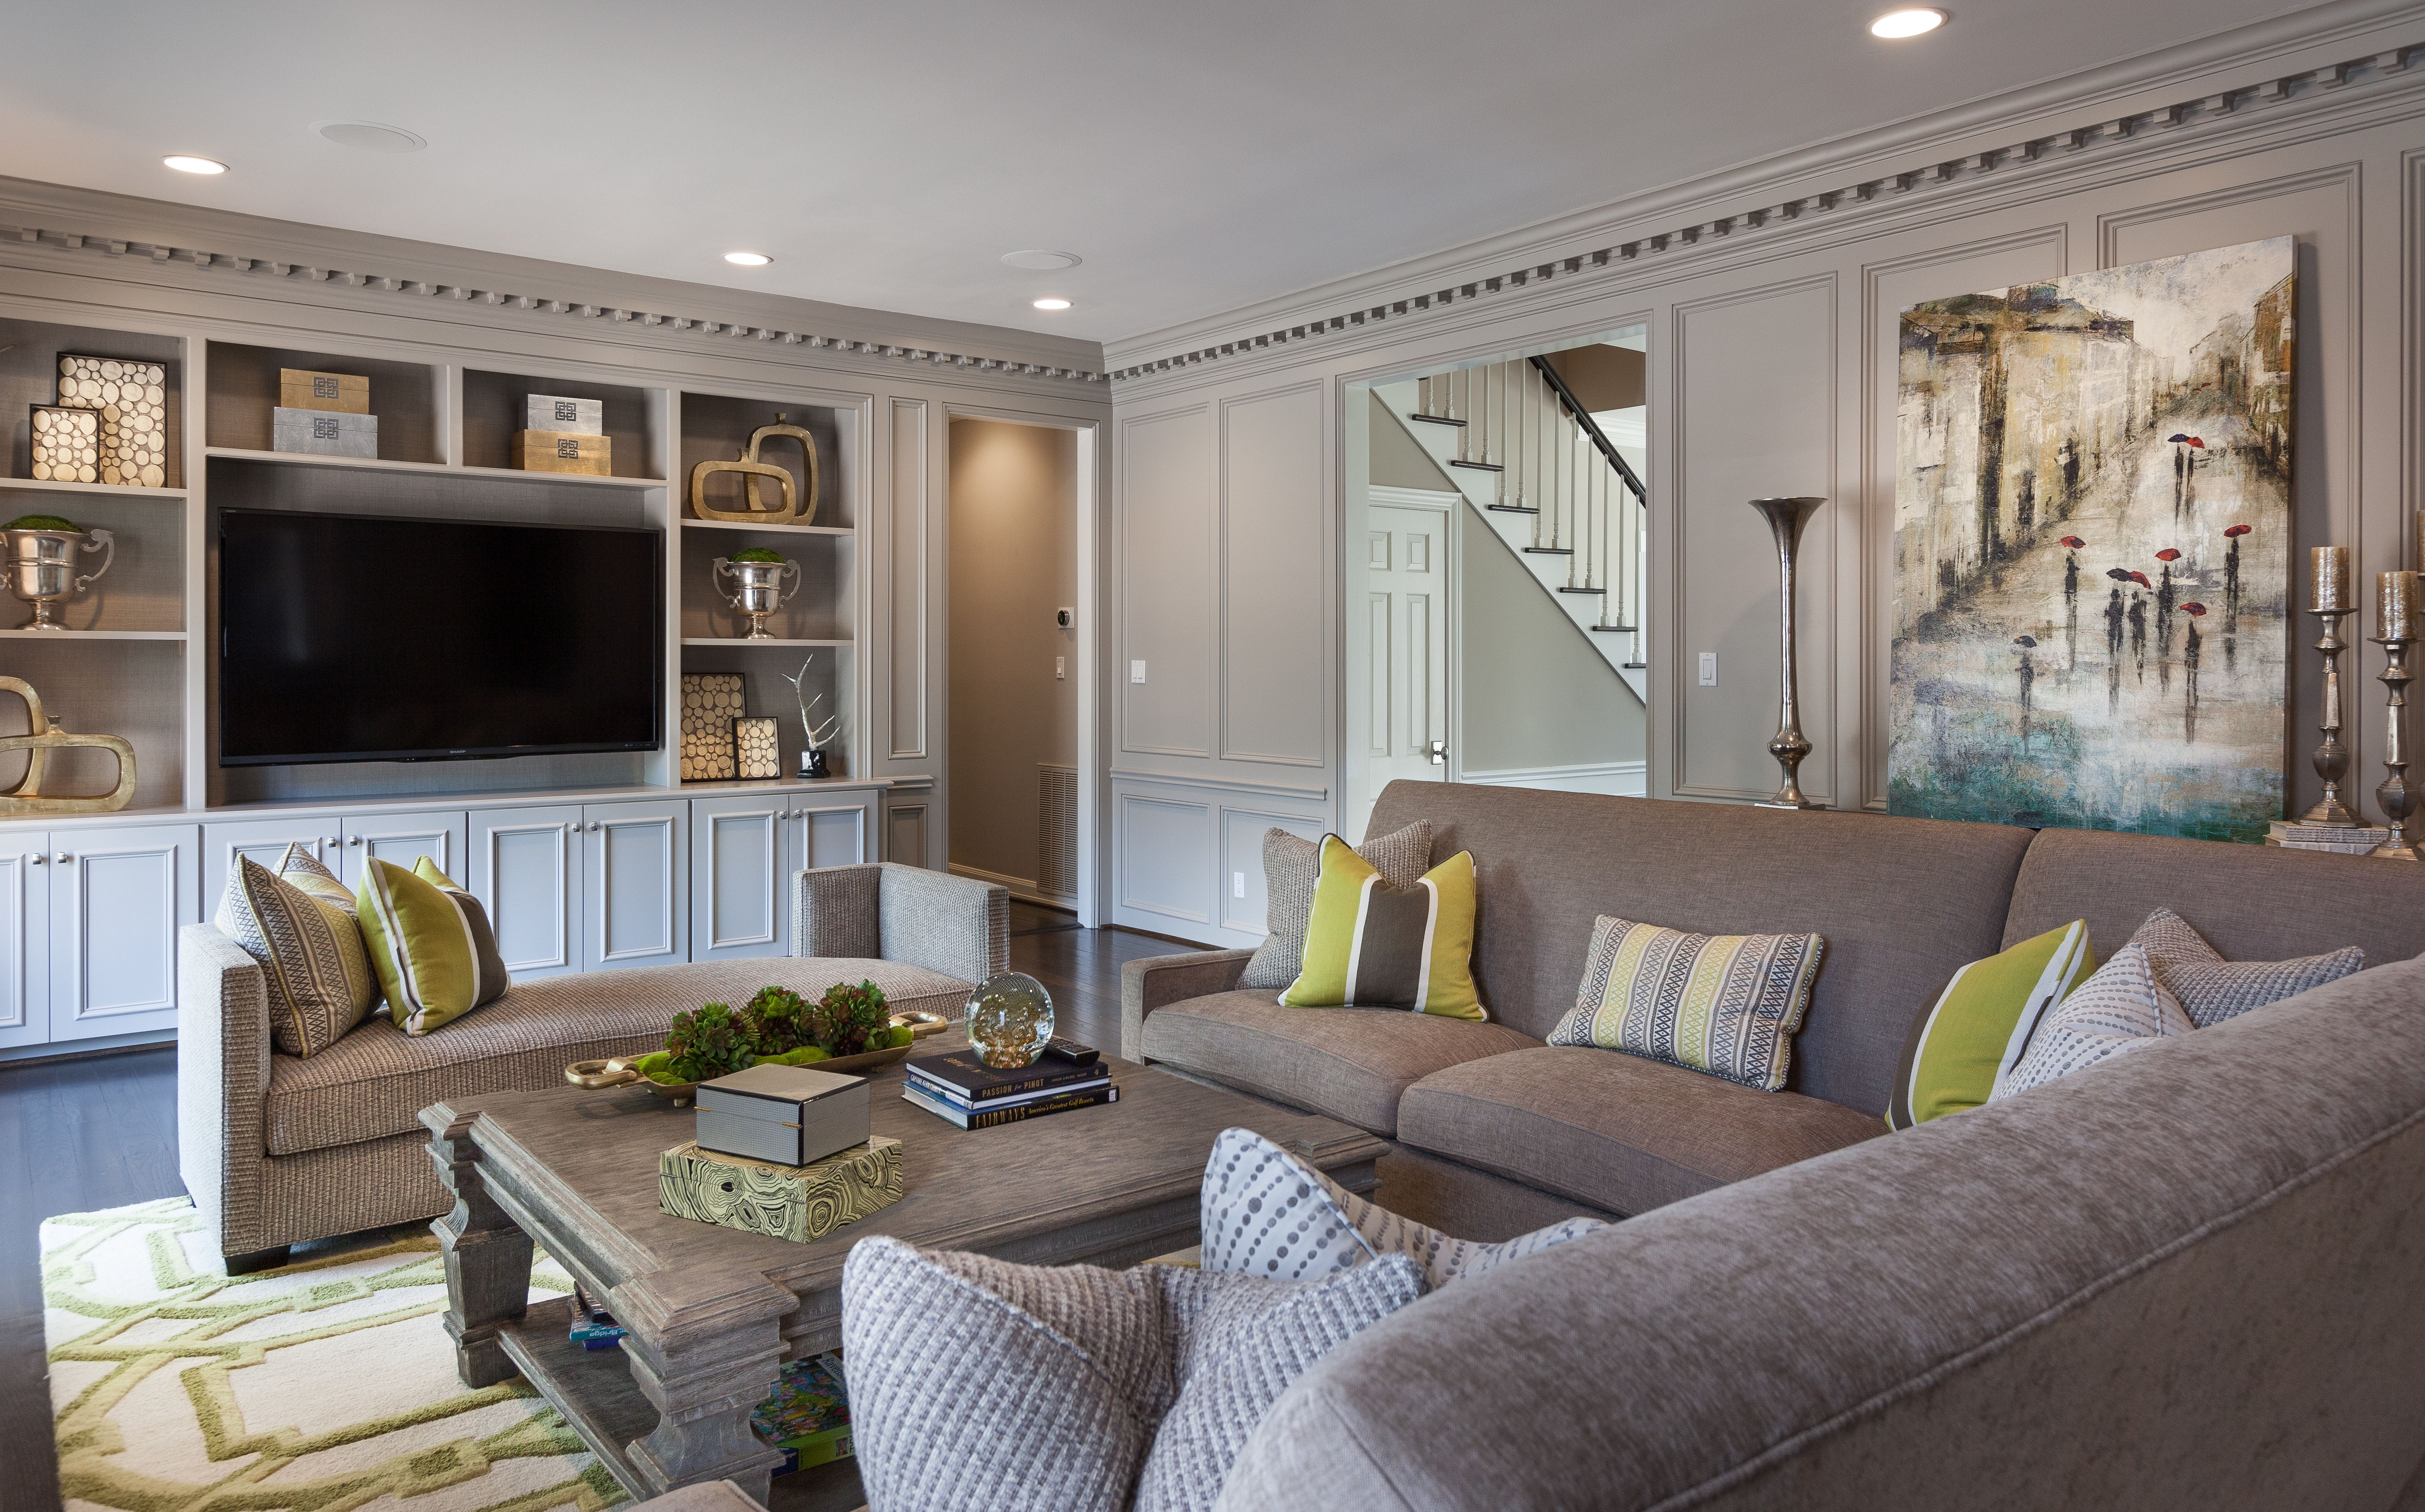 Transitional-Living-Room-Design   Ideas for building a new ...